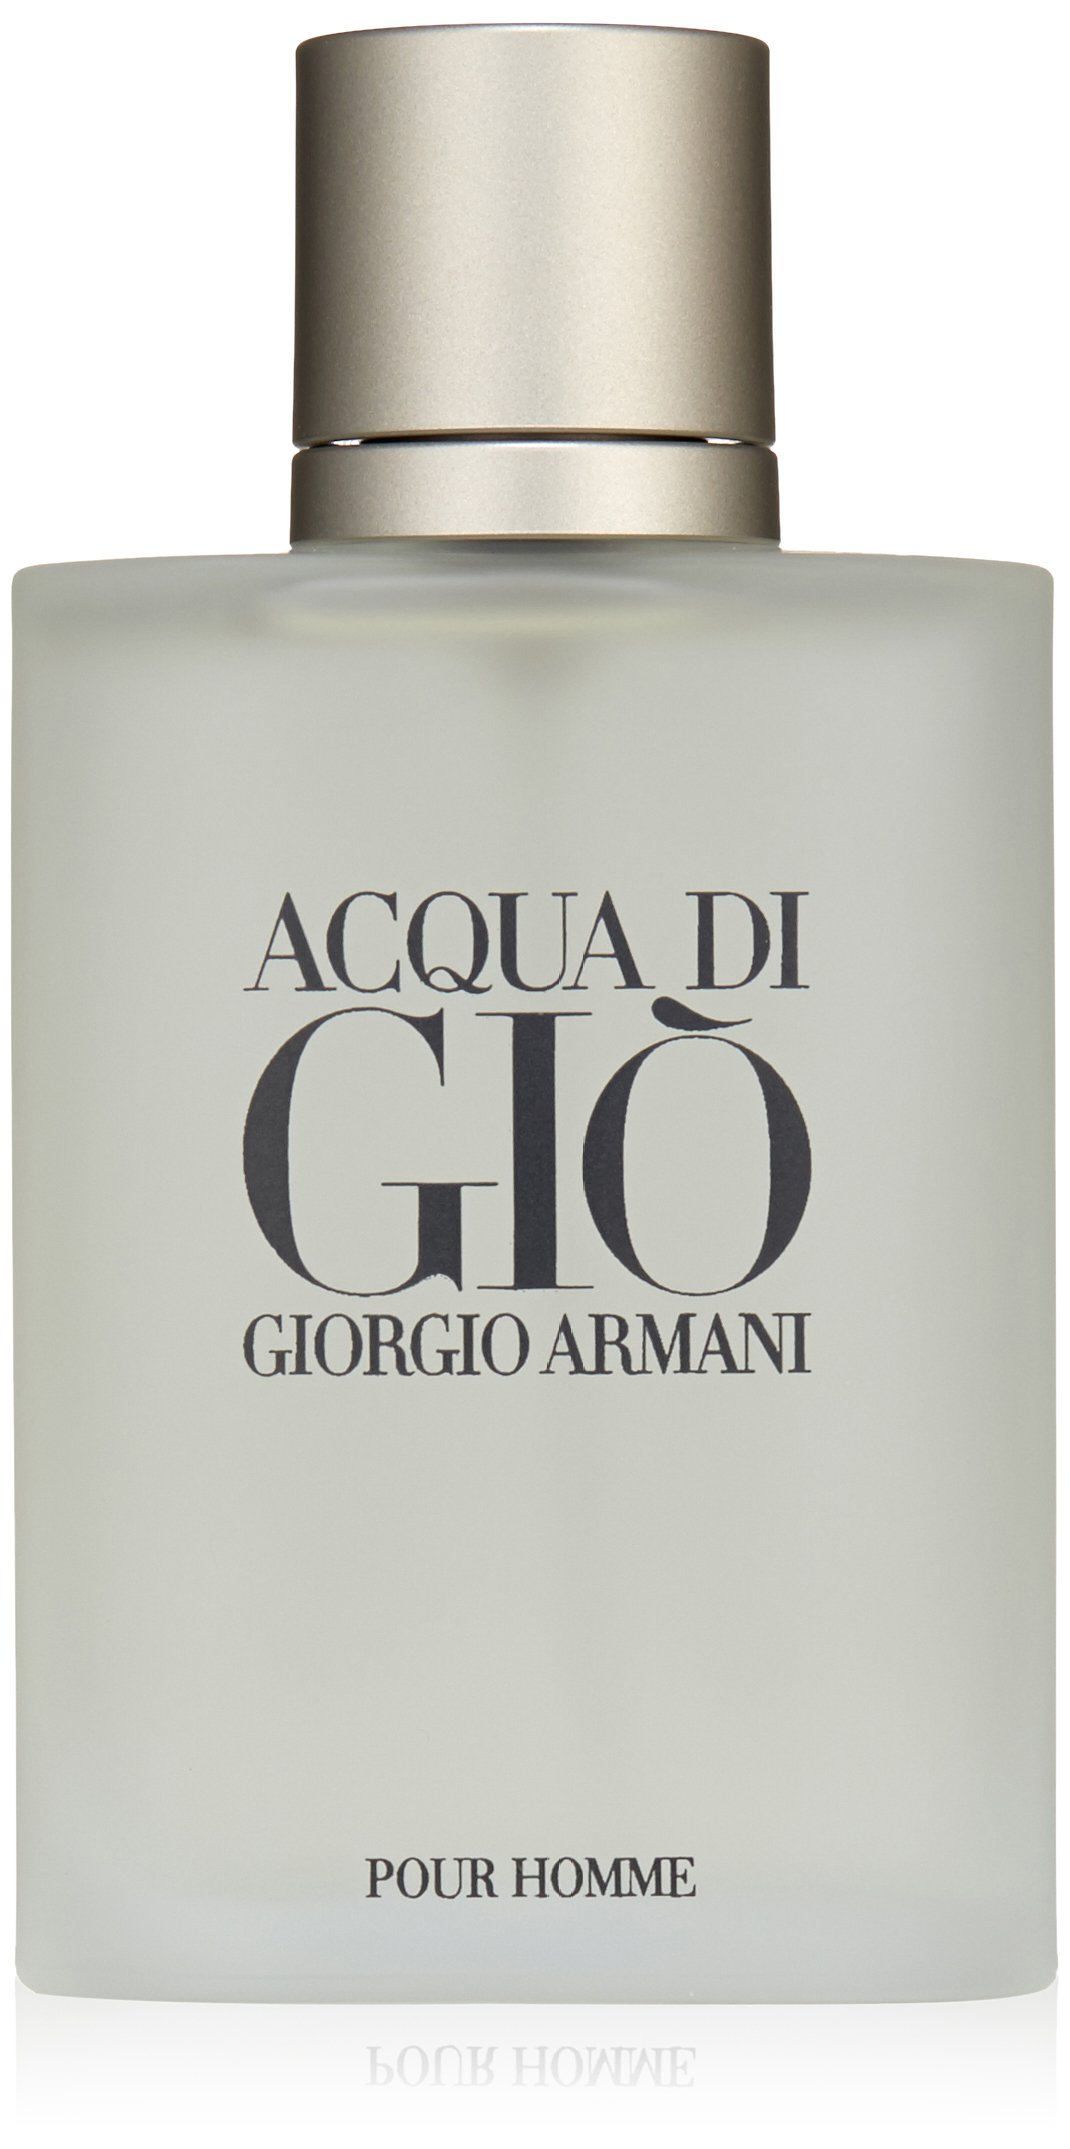 Acqua Di Gio By Giorgio Armani For Men. Eau De Toilette Spray 3.4 Ounces